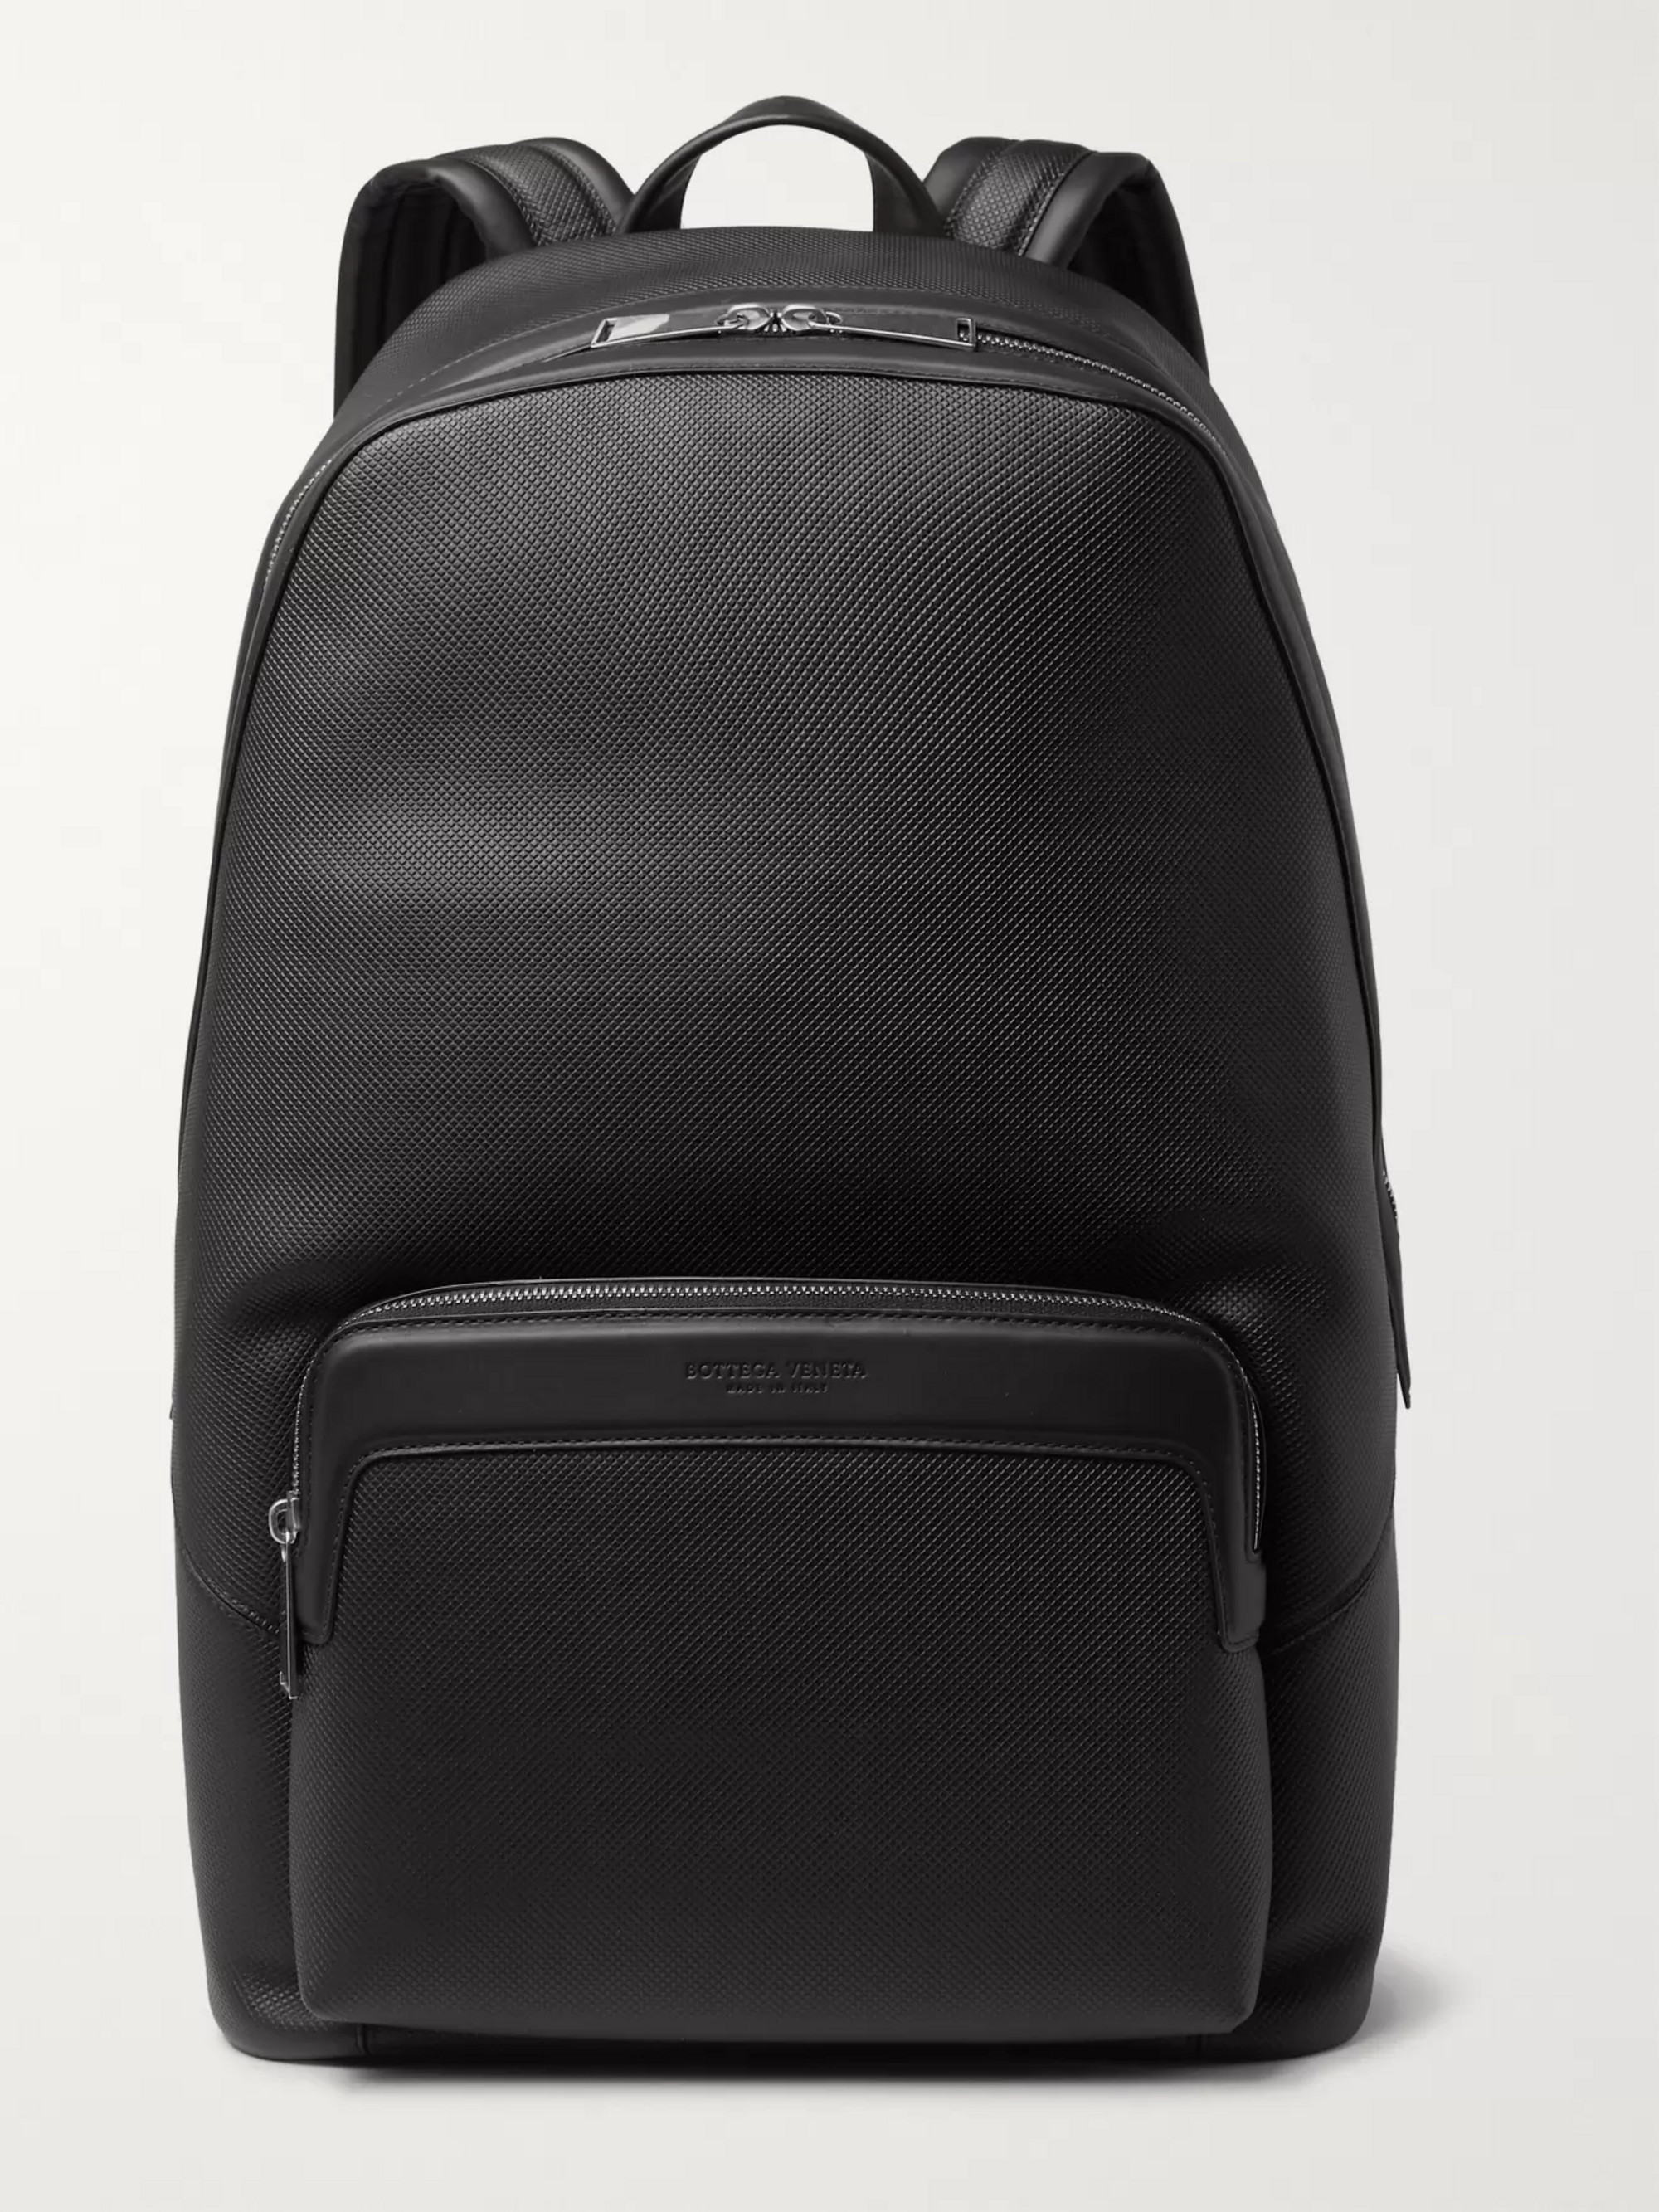 Bottega Veneta Marco Polo Textured-Leather Backpack